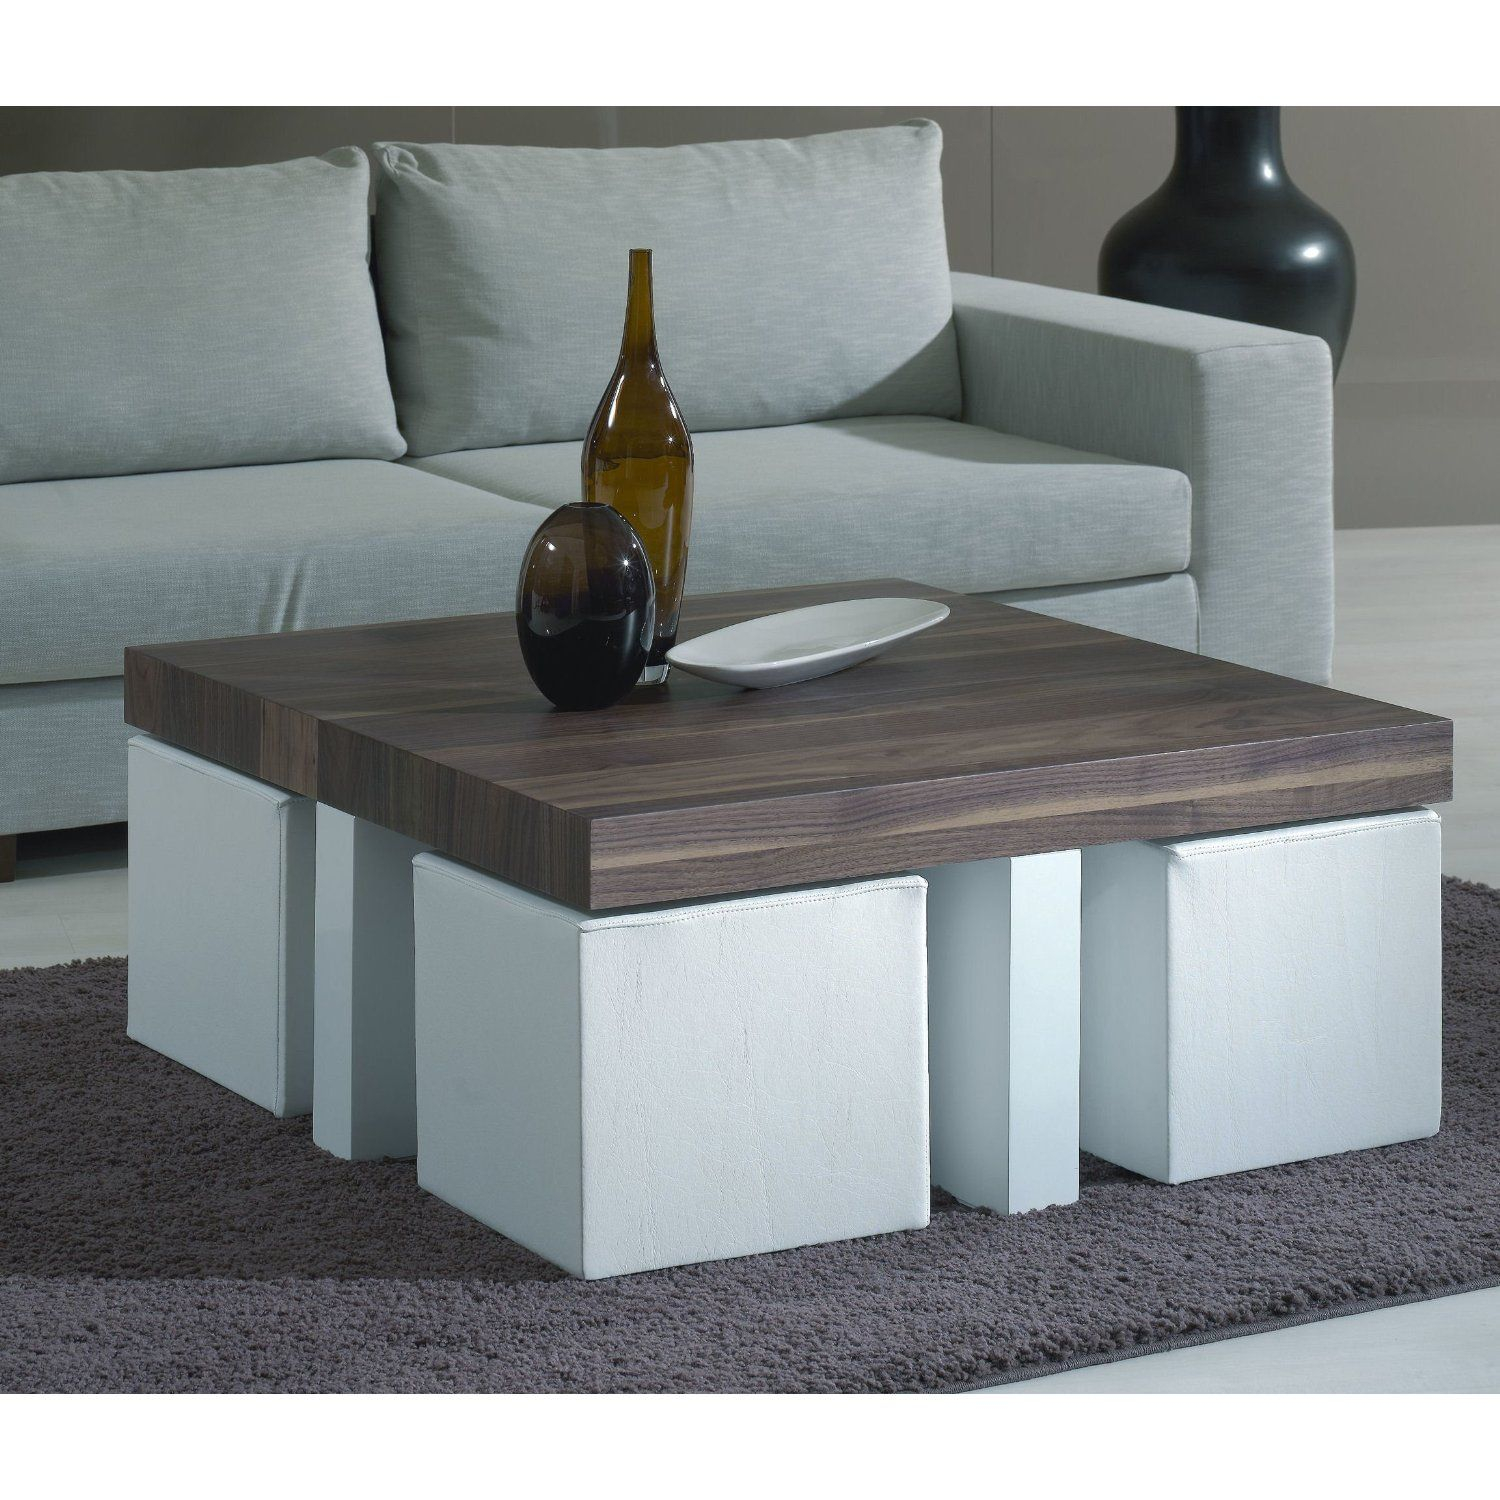 Coffee Table With Stools Love This Idea For Stools Tucked Under A within size 1500 X 1500